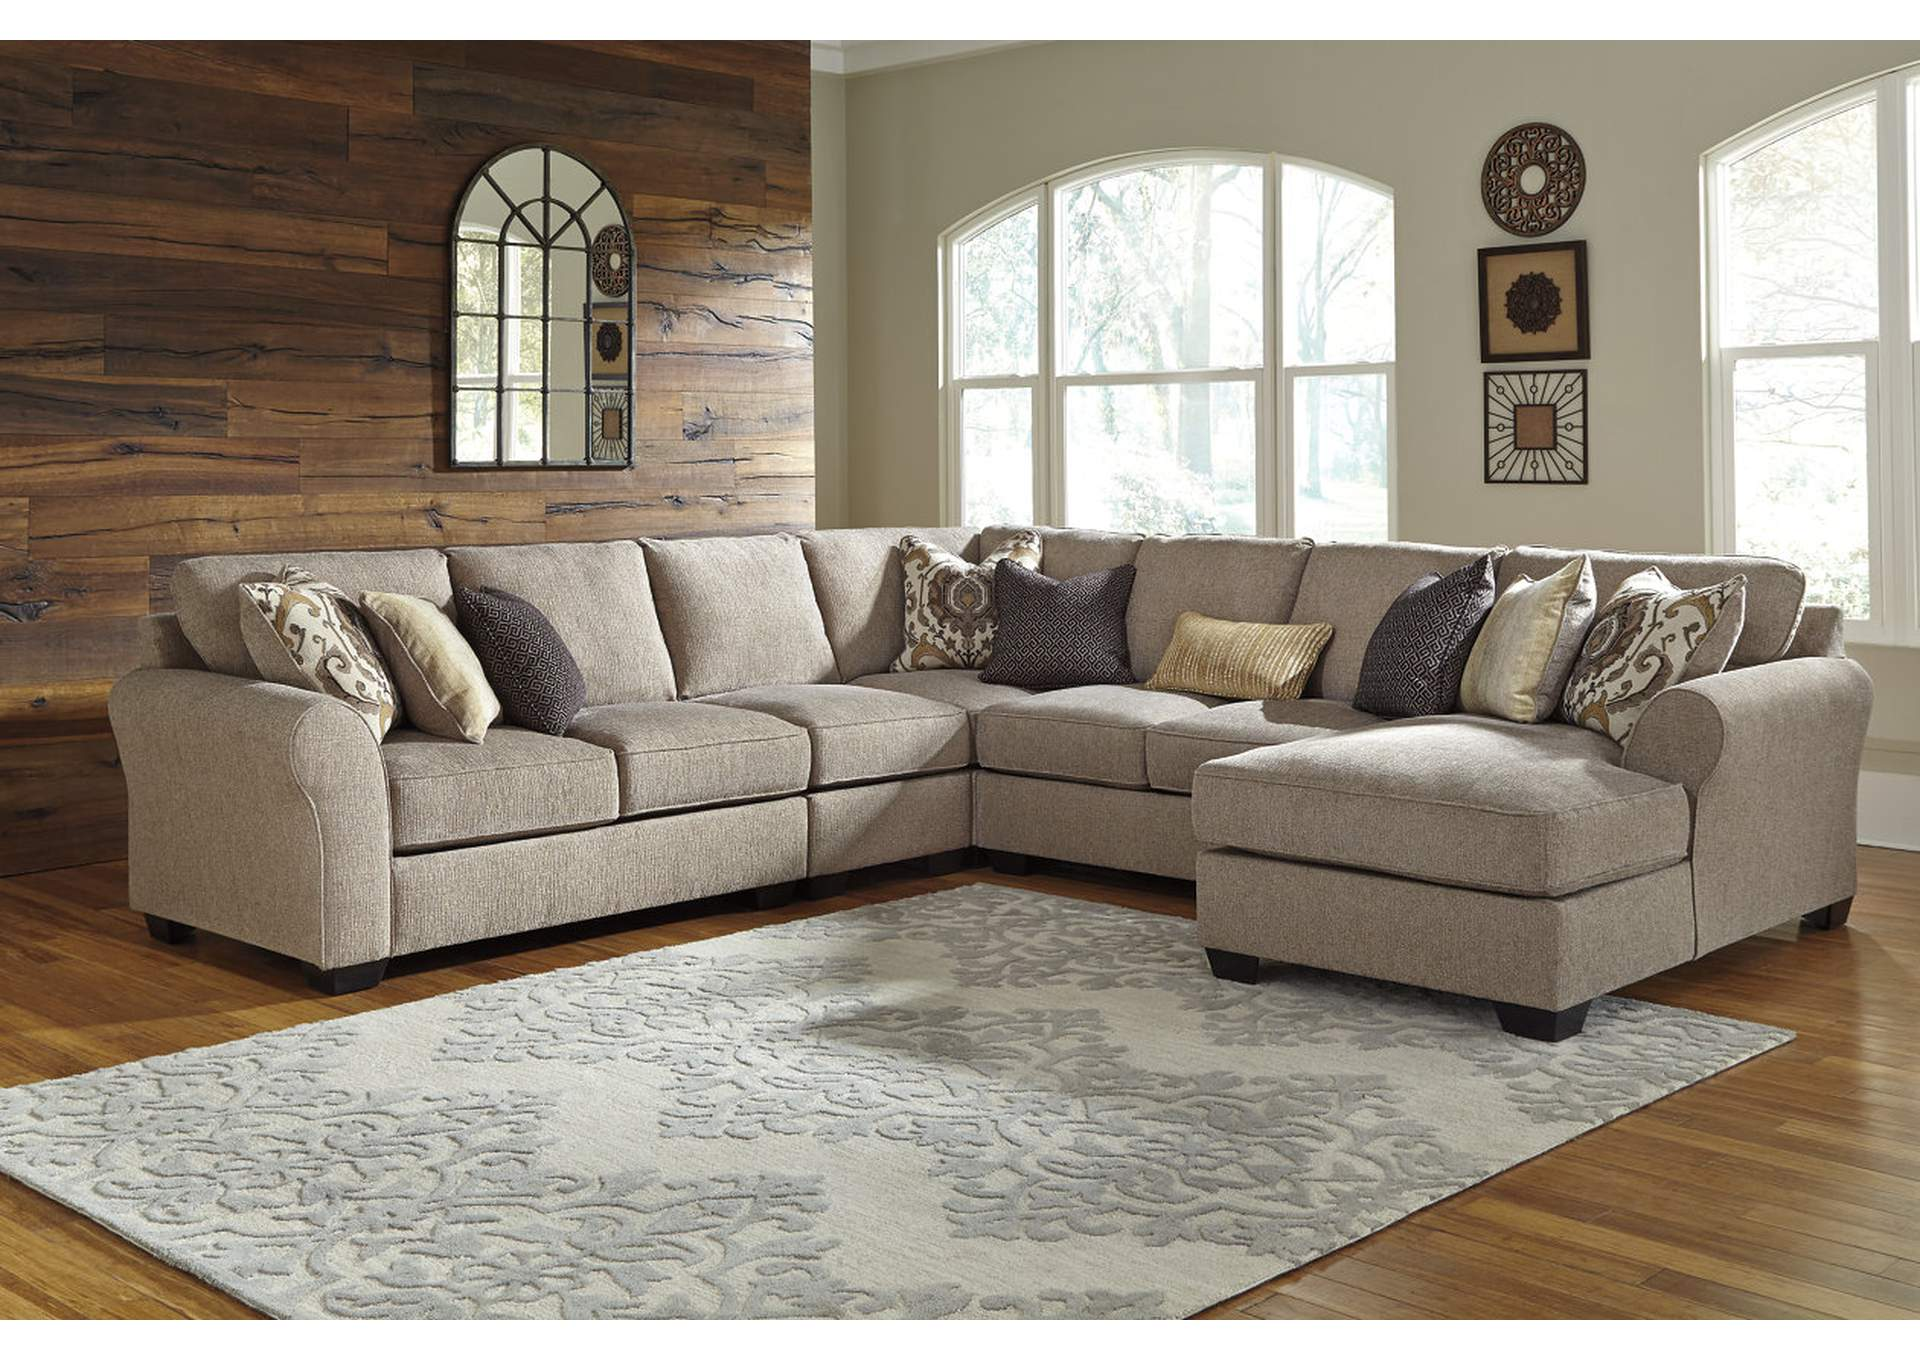 Pantomine Driftwood Extended Sectional w/Right Facing Corner Chaise,ABF Benchcraft